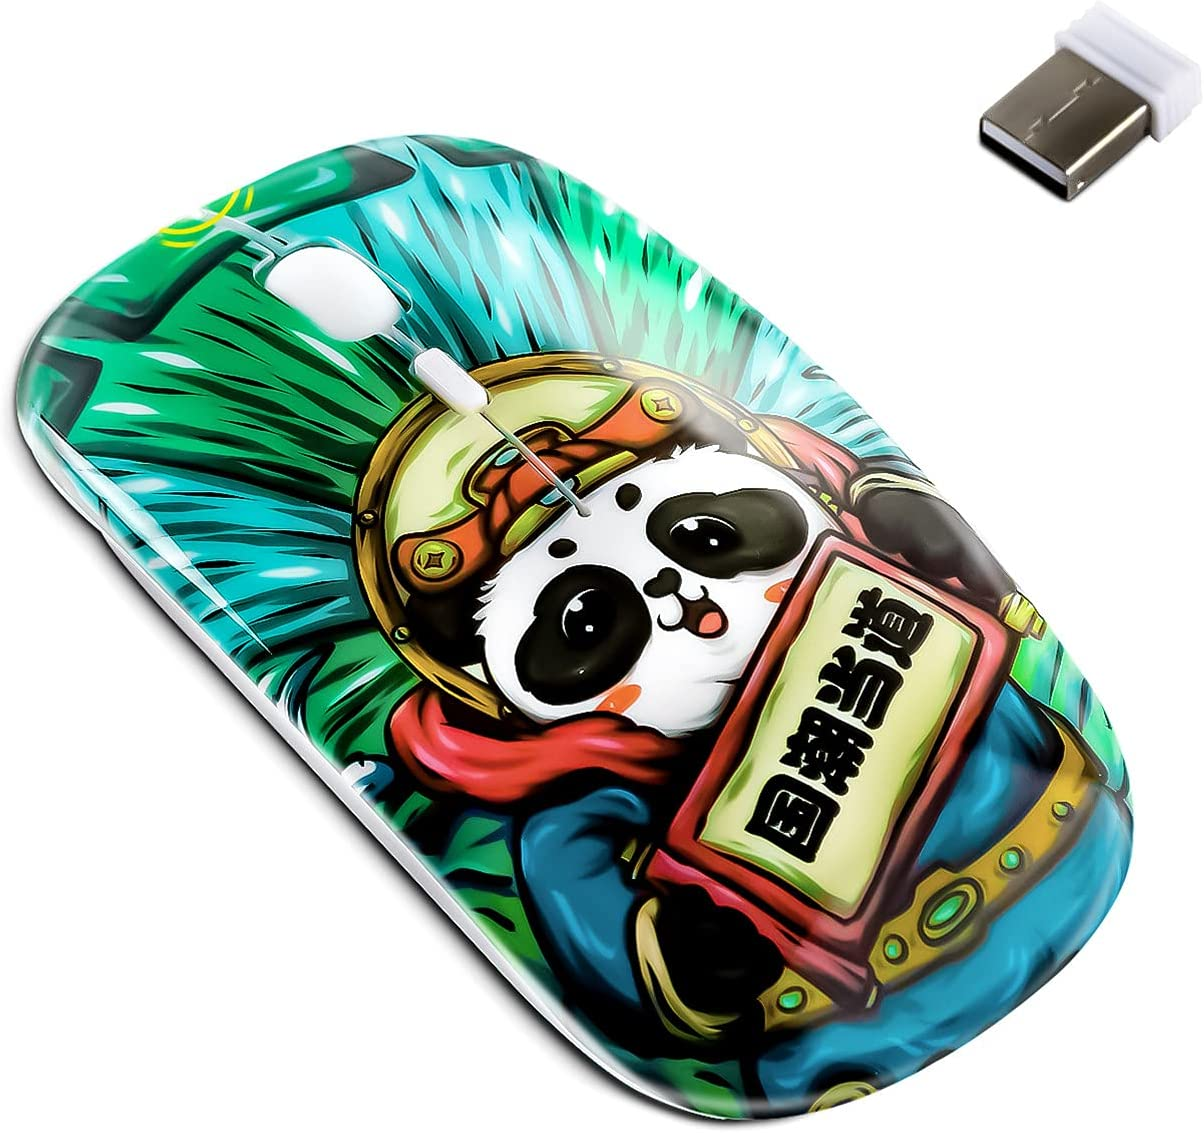 3C Light Cute Panda Shape USB Wired Mouse Novelty Portable Computer Mouse Animal Small Optical Mice Desktop Mouse 1600 DPI 3 Buttons for Women Kids Girls (Green)